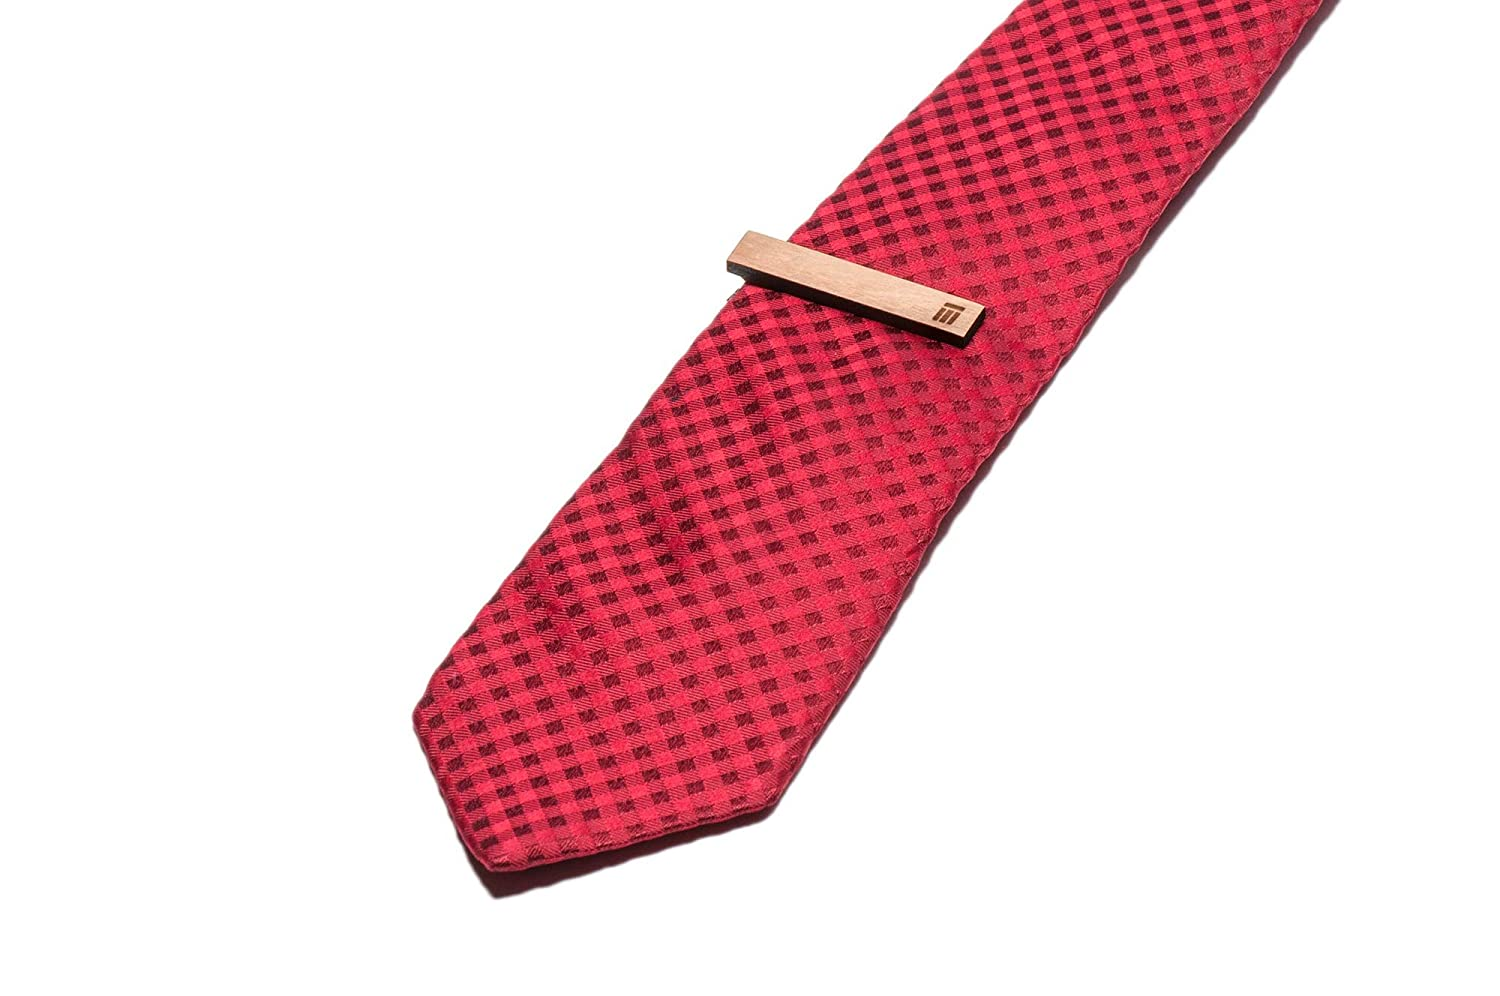 Cherry Wood Tie Bar Engraved in The USA Wooden Accessories Company Wooden Tie Clips with Laser Engraved Layout Grid Design